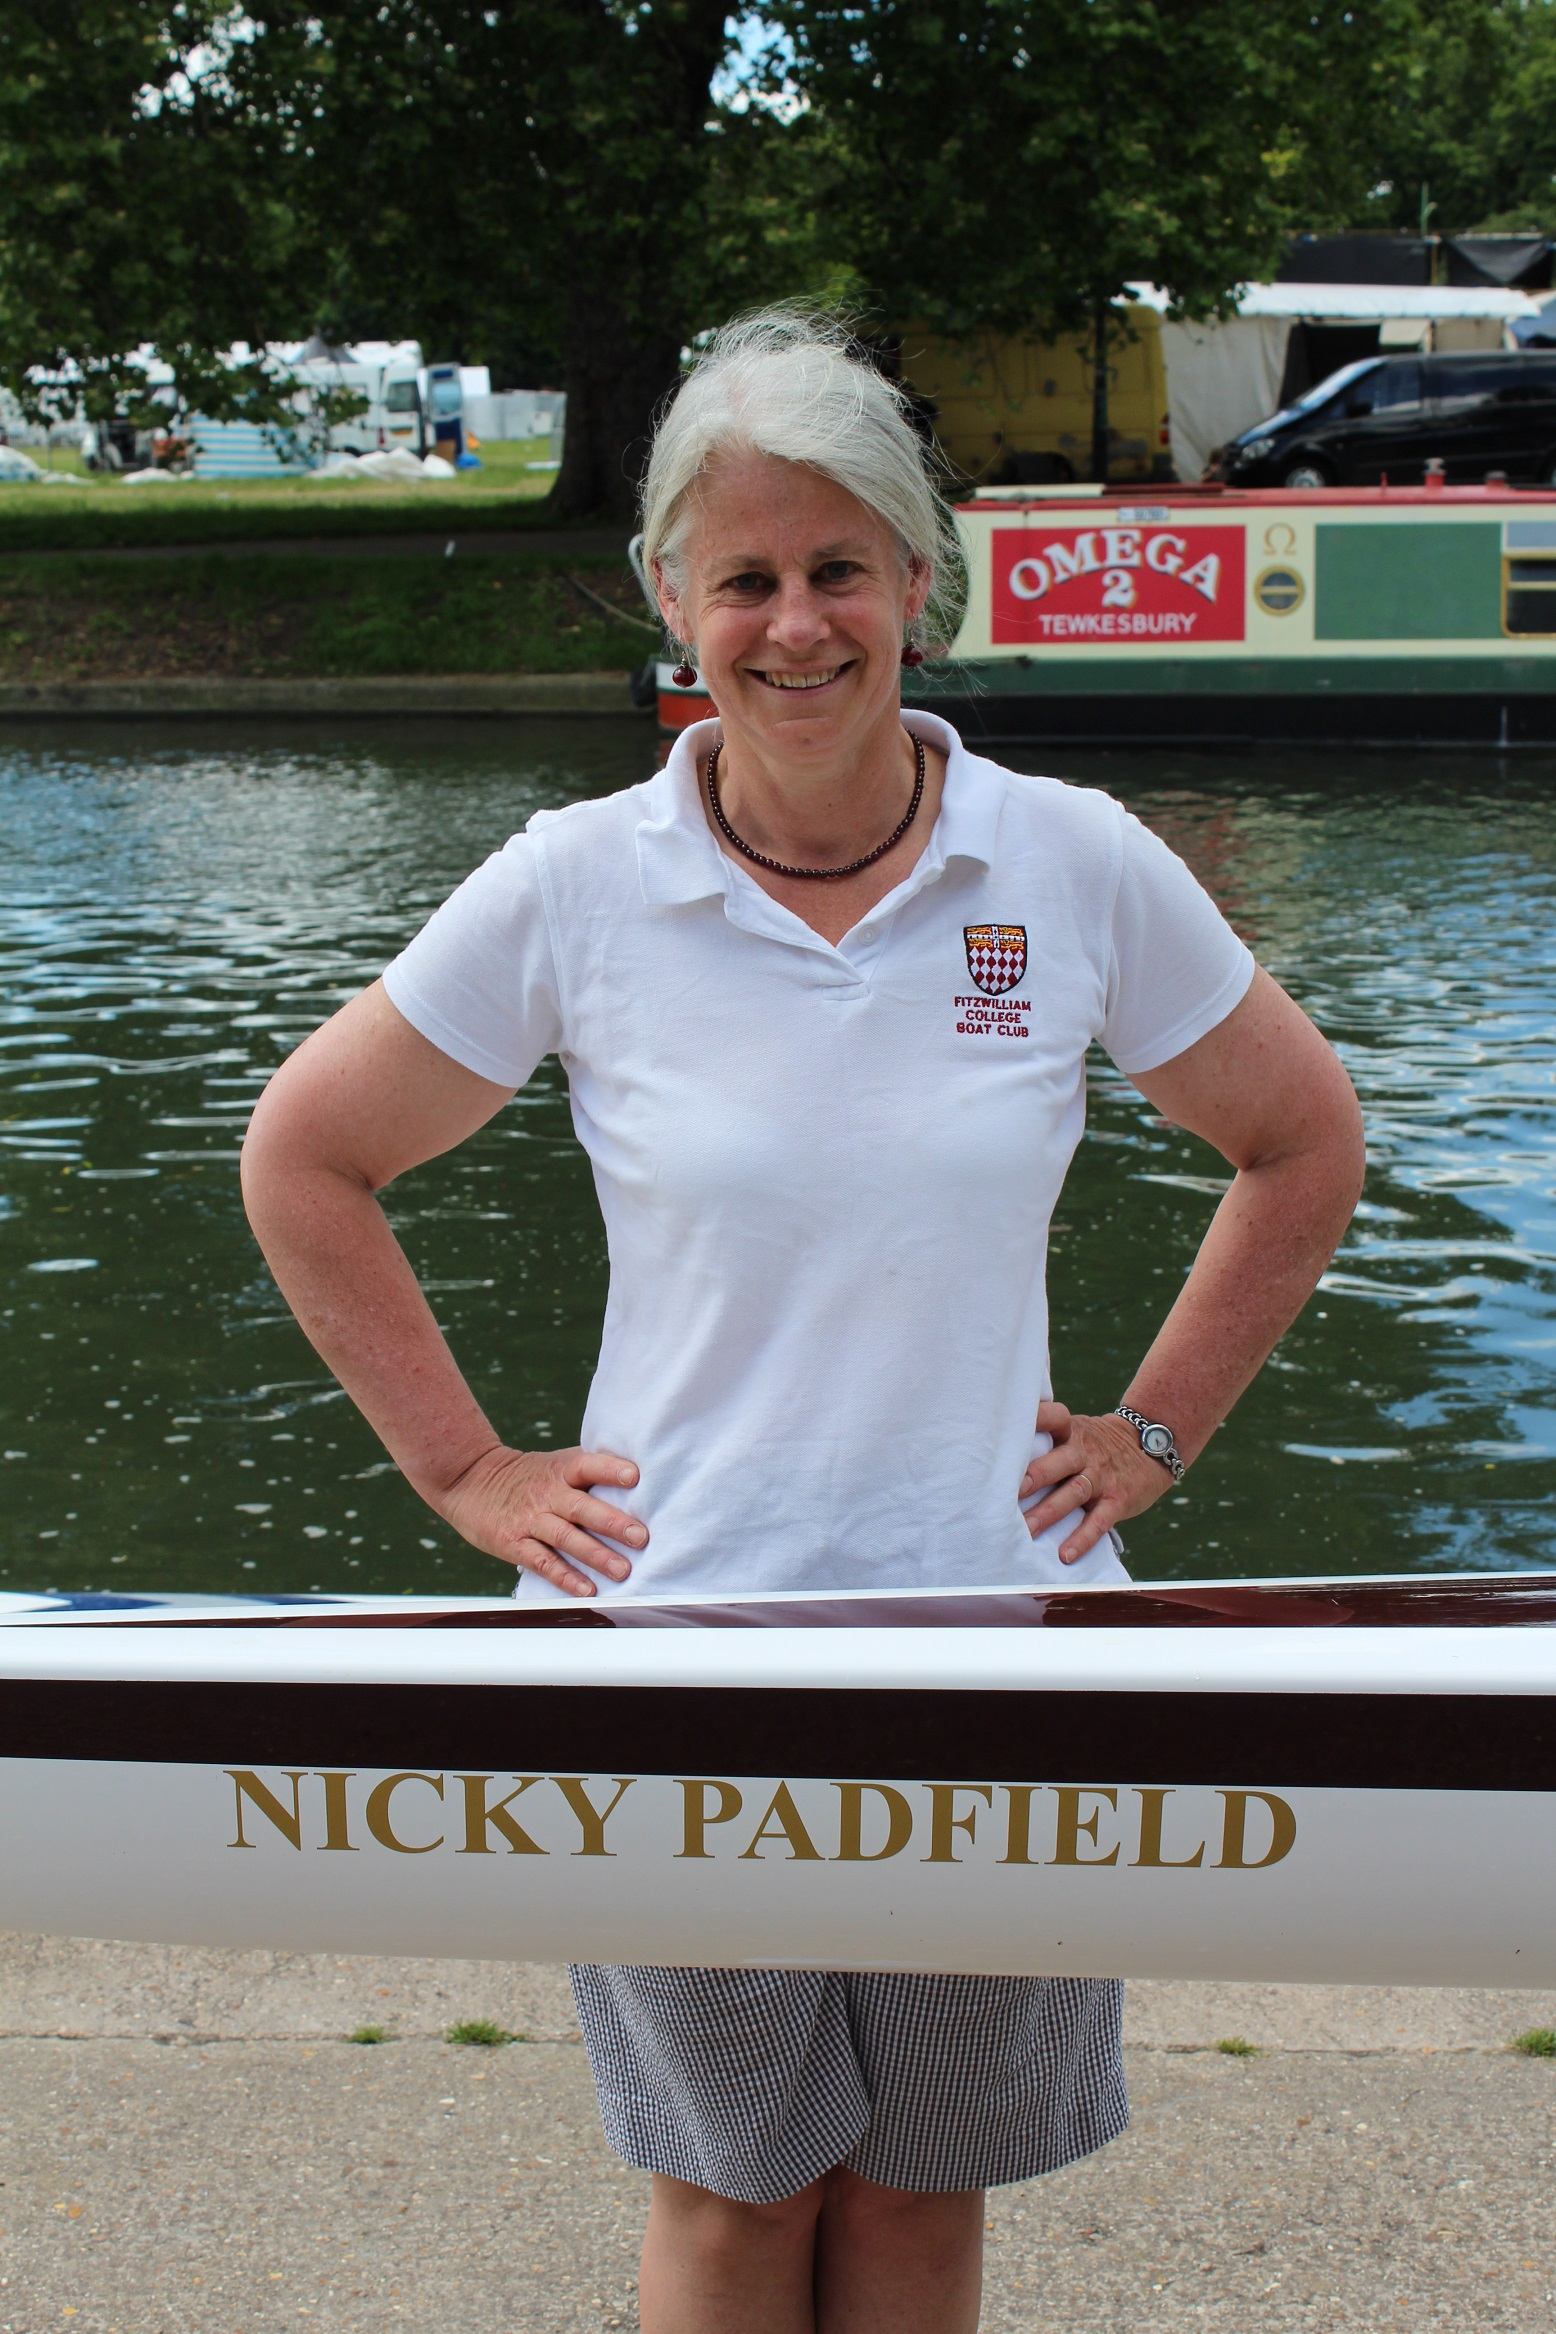 Professor Nicola Padfield has a Fitzwilliam Boat Club boat named after her